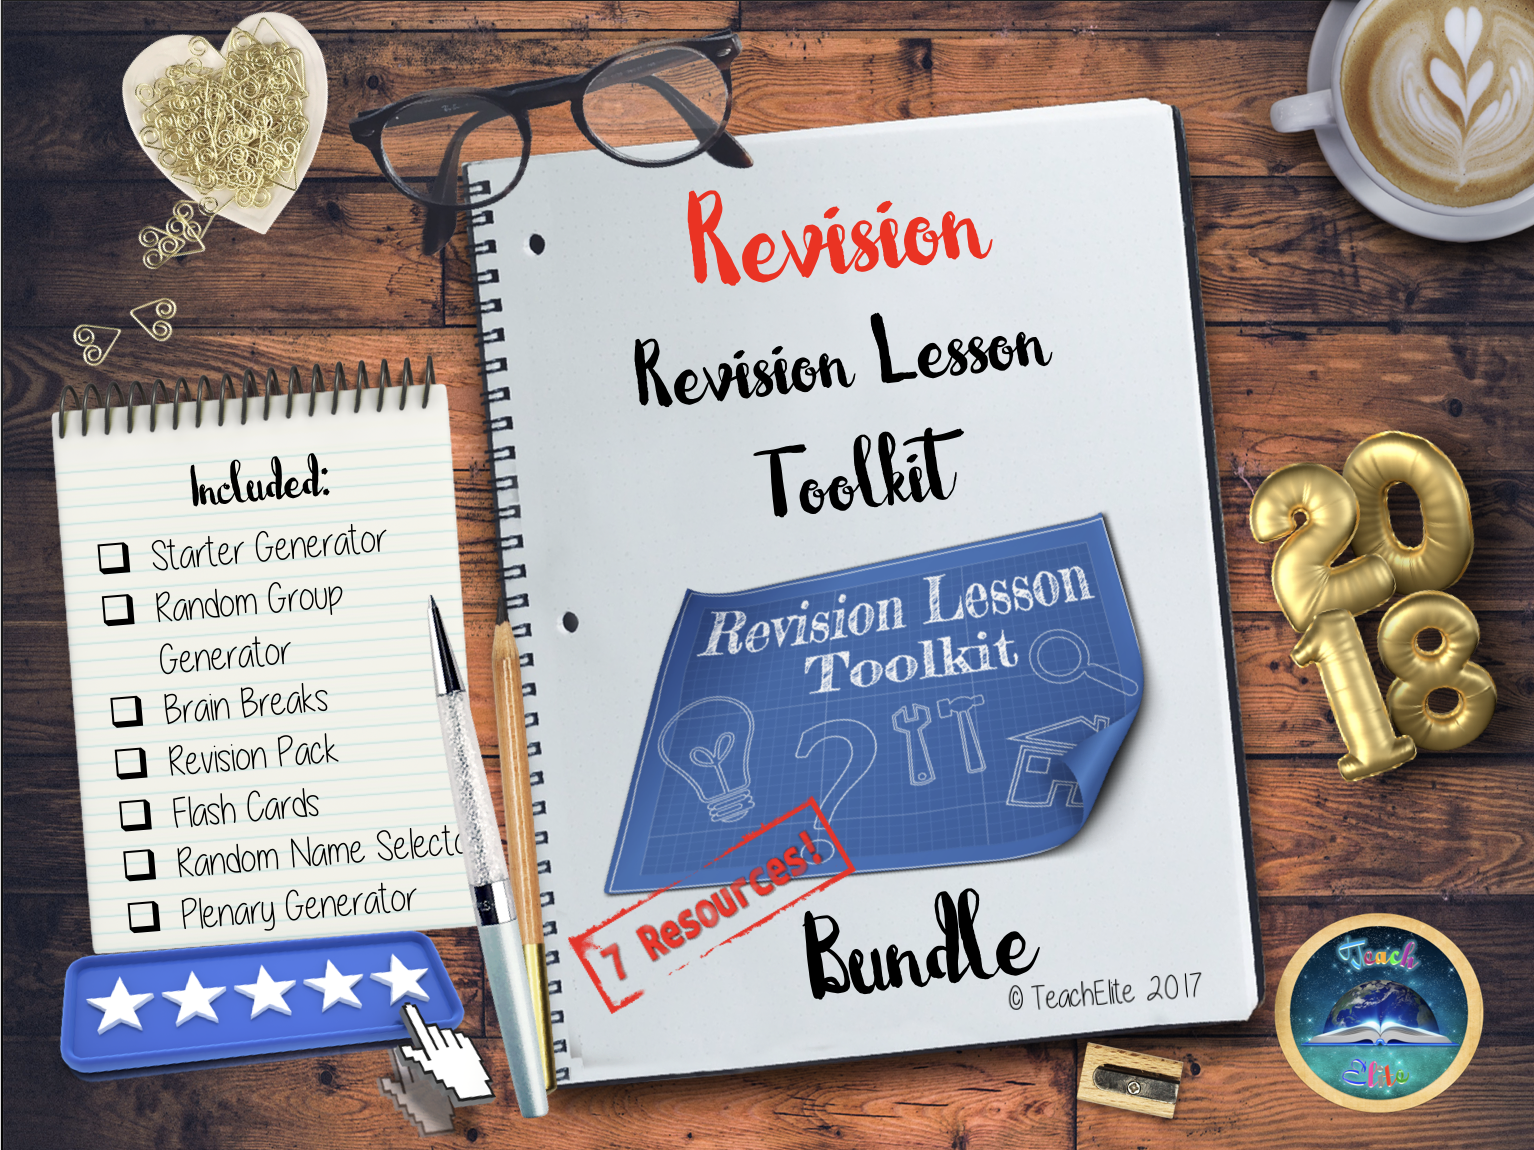 Revision: Revision session Toolkit